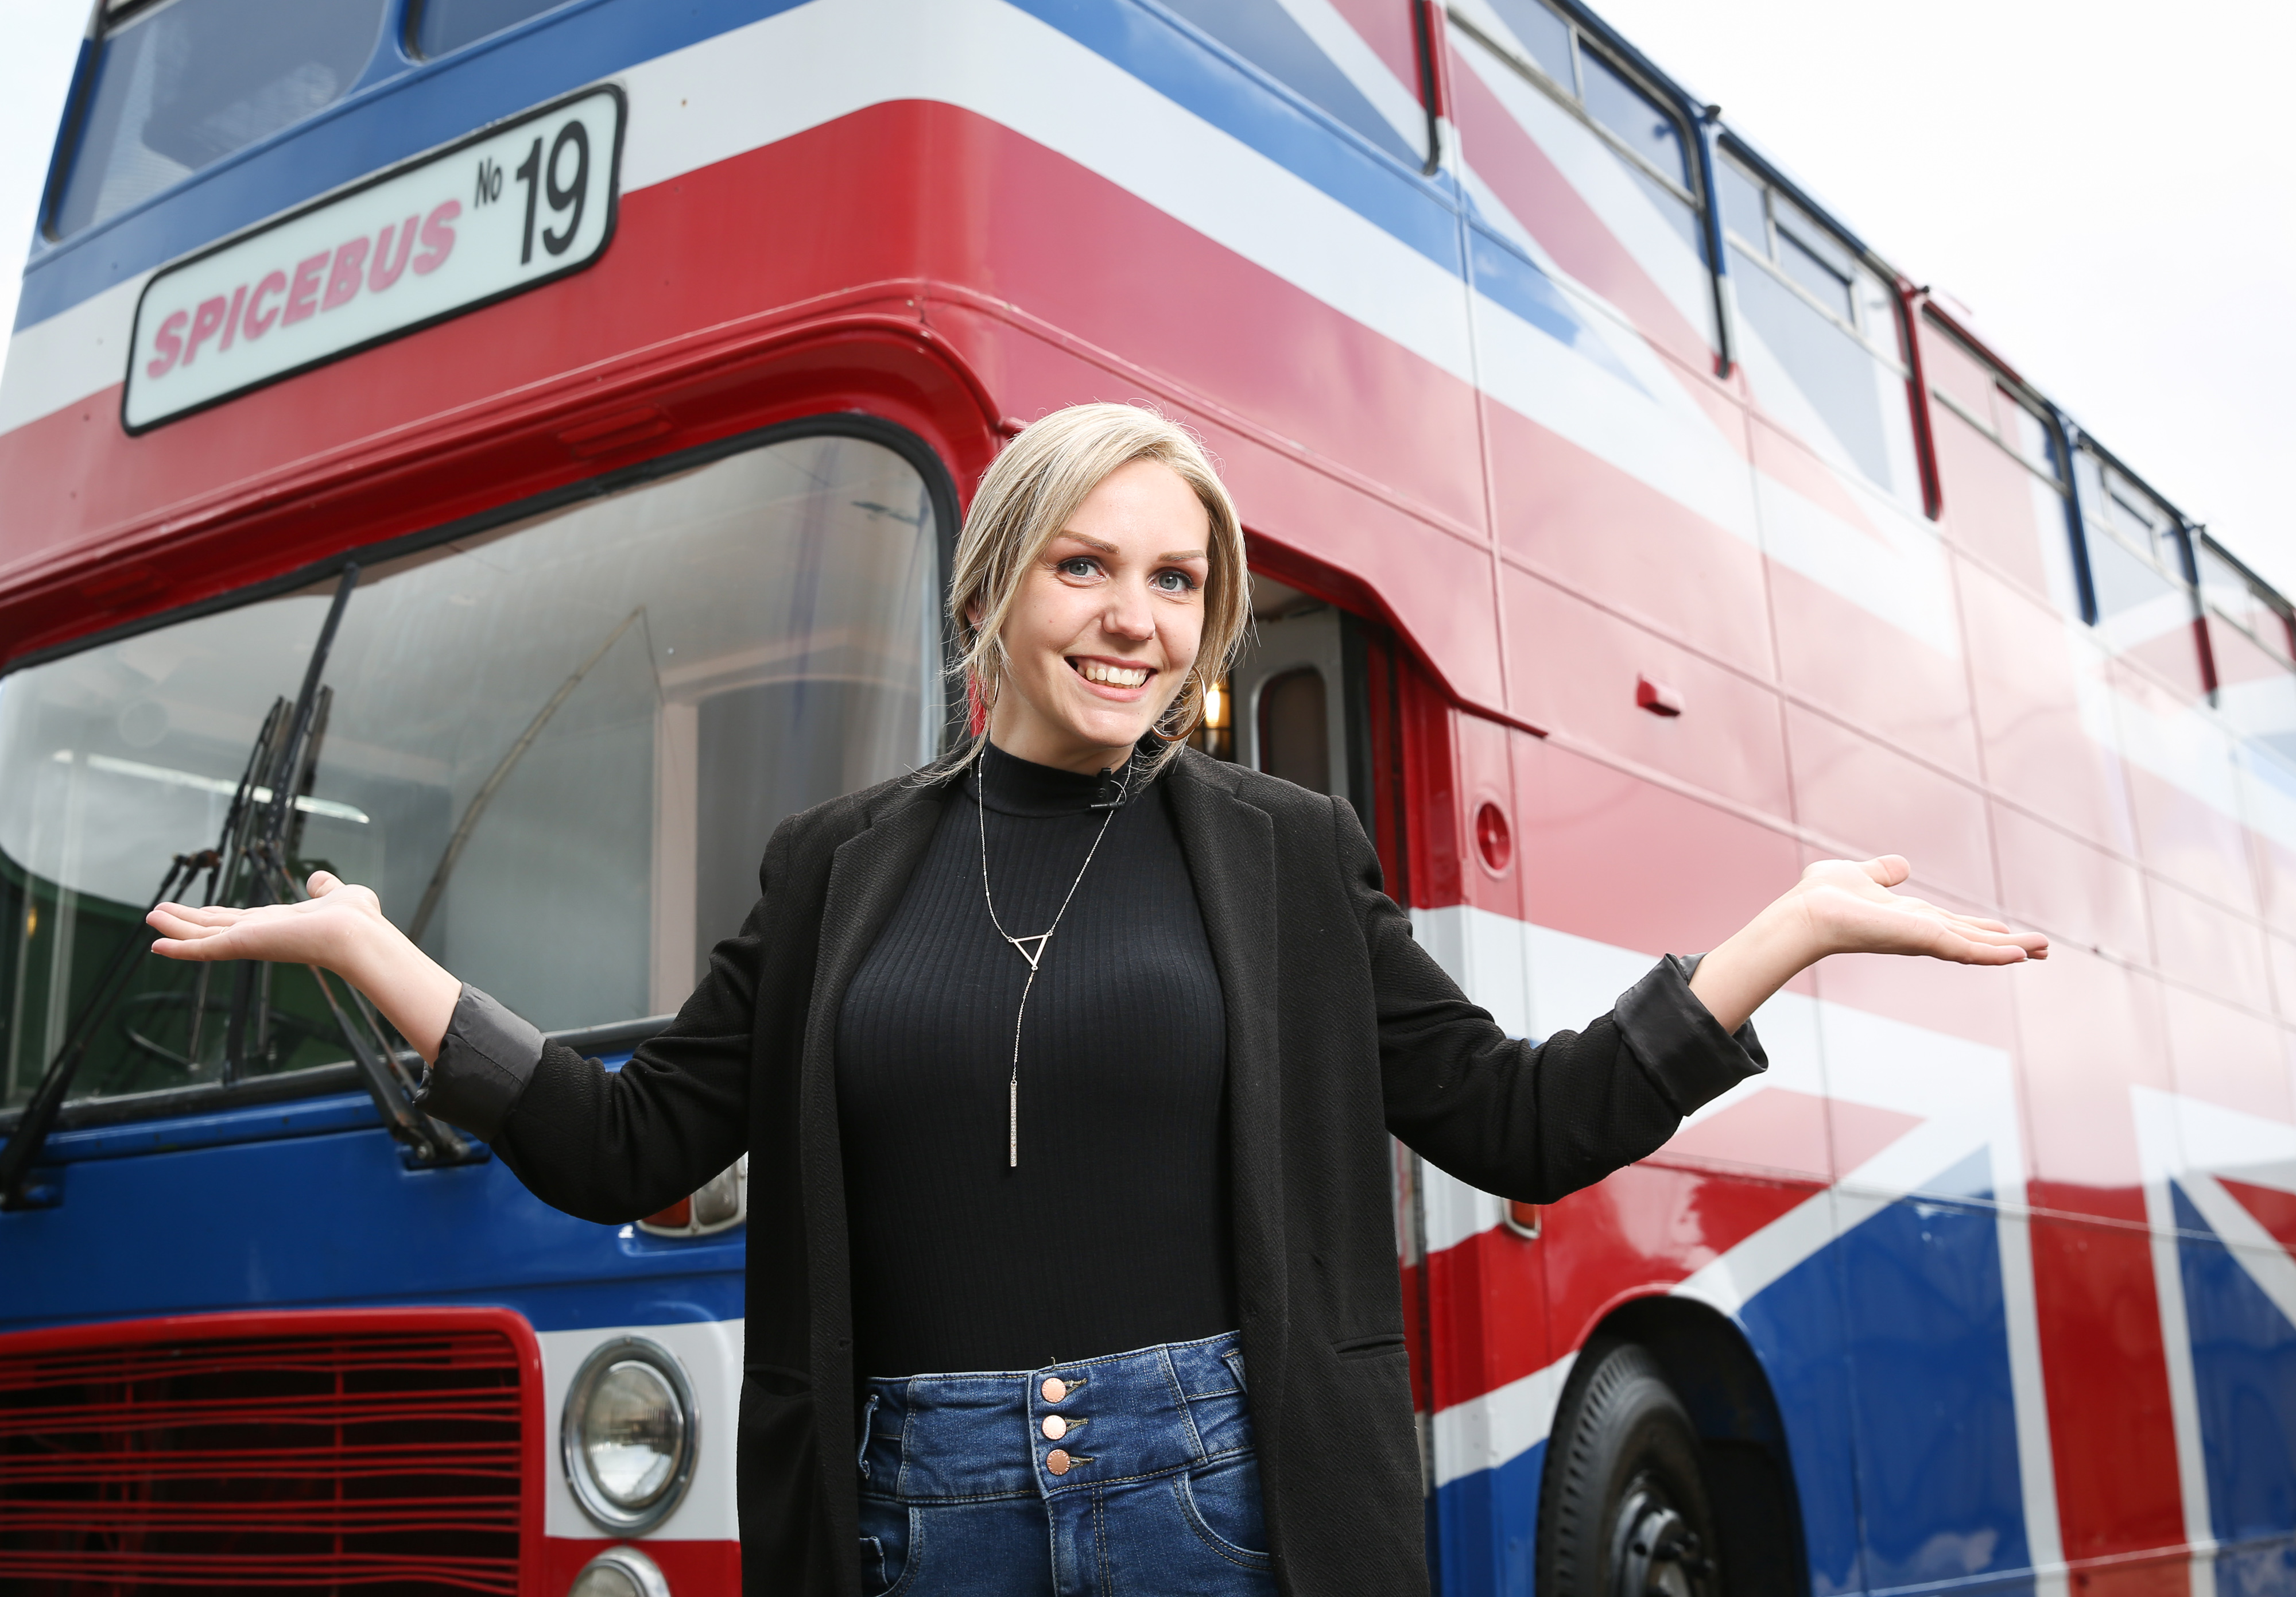 Mega-fan Suzanne Godley is listing the original Union Jack-painted Spice Bus from the 1997 movie Spice World on Airbnb